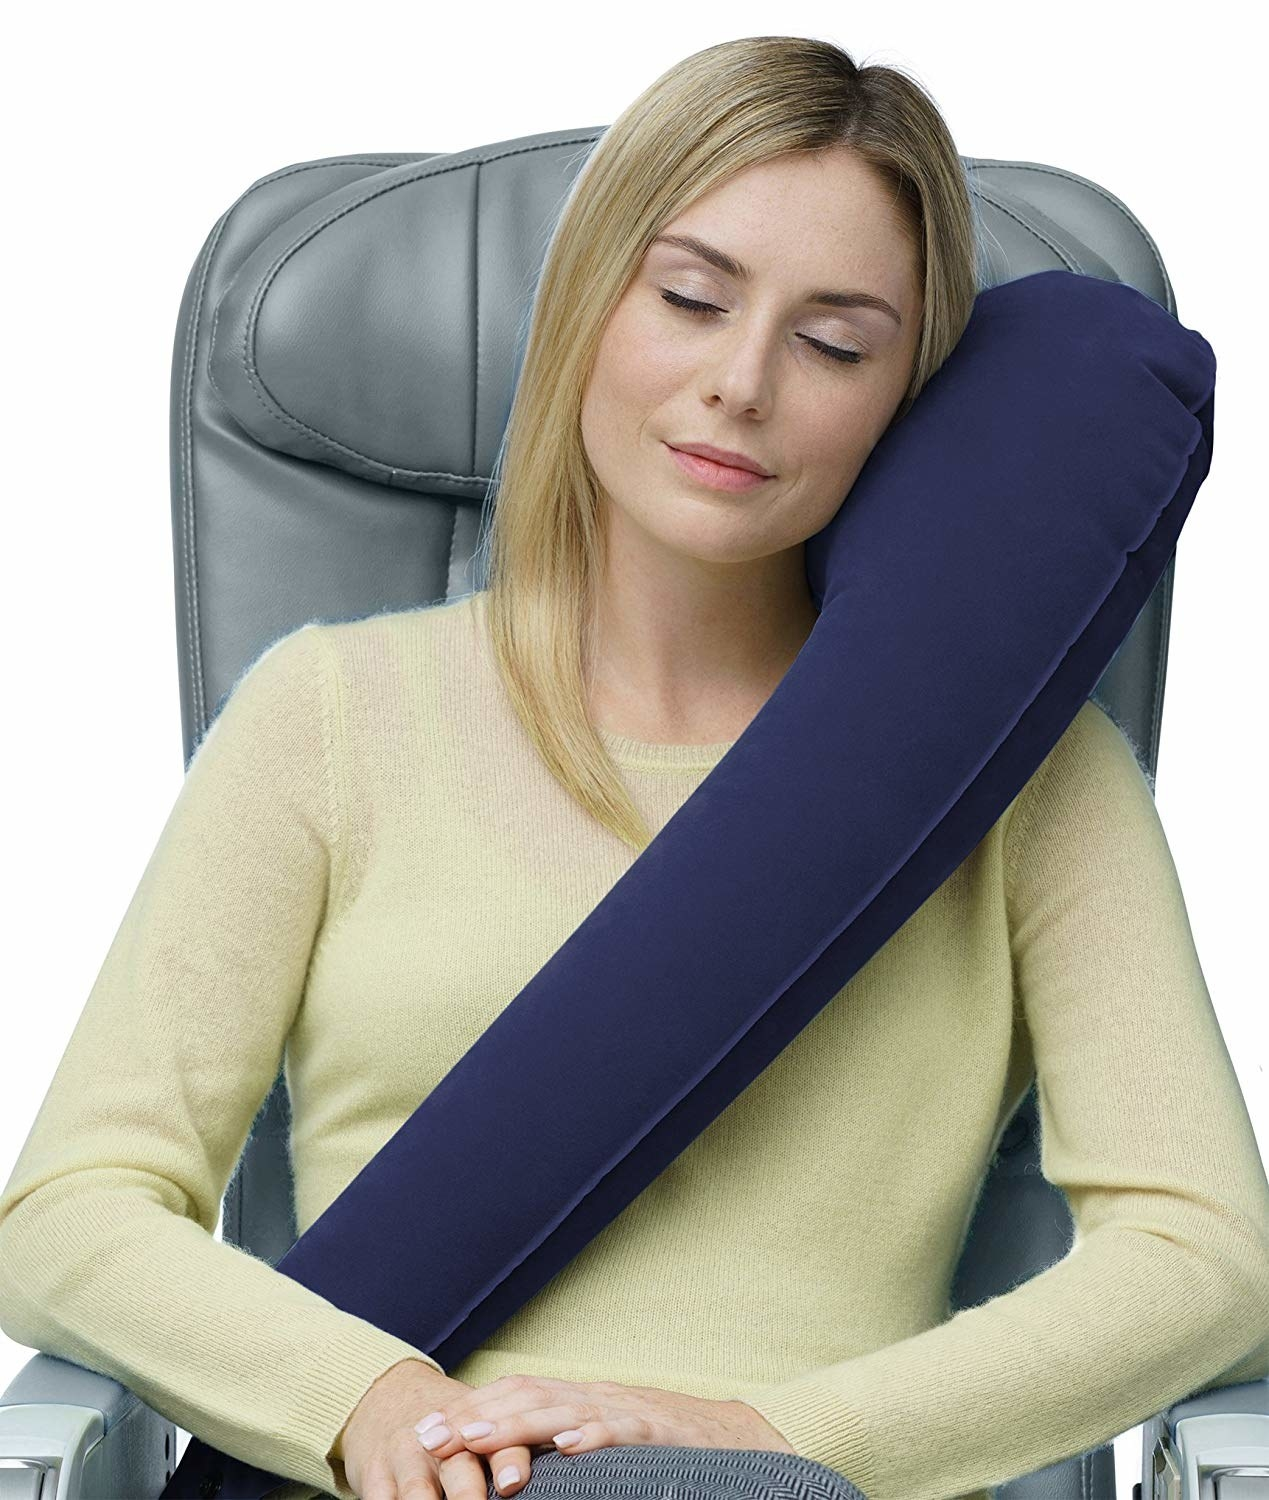 model with the inflated side sleeping pillow across one shoulder and in front of their body while sitting in a chair